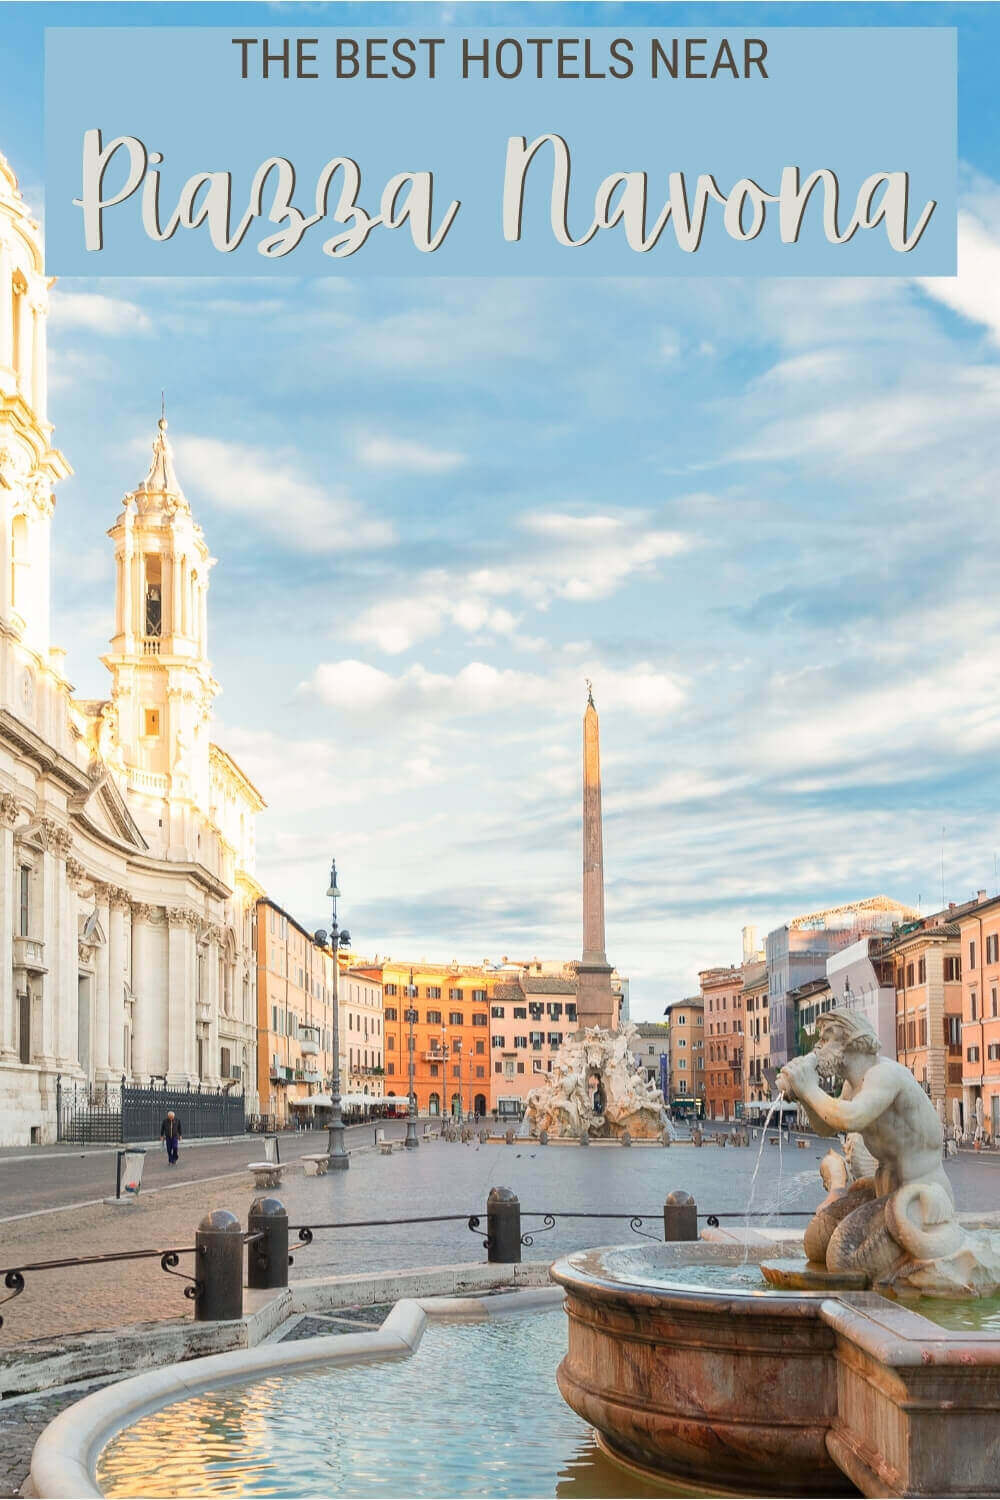 Check out the best hotels near Piazza Navona, Rome - via @strictlyrome